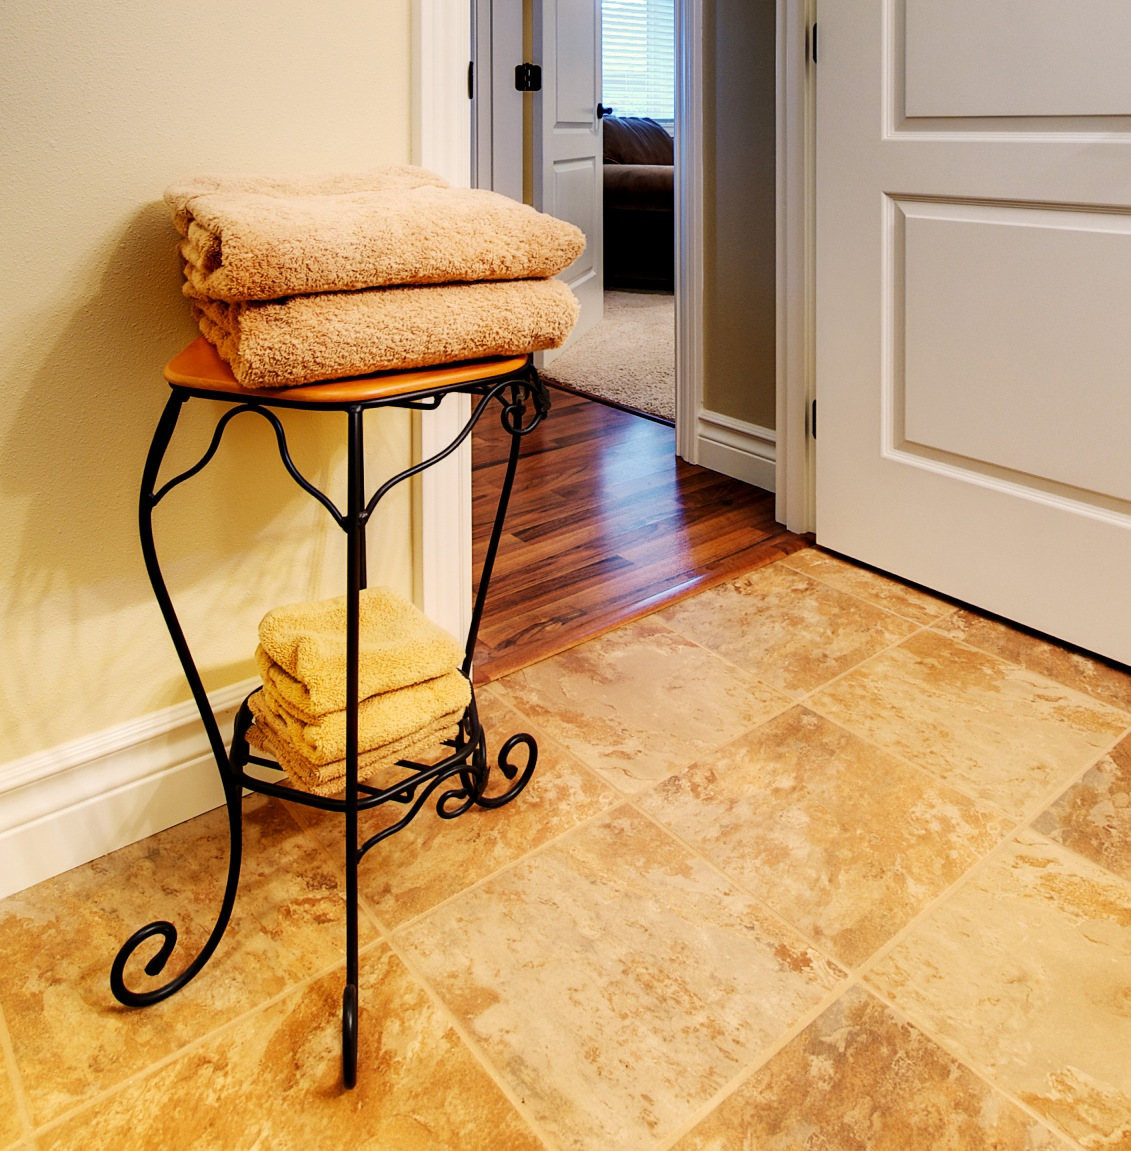 Tile is shown on the bathroom floor and Wilsonart maple laminate flooring for the hallway.